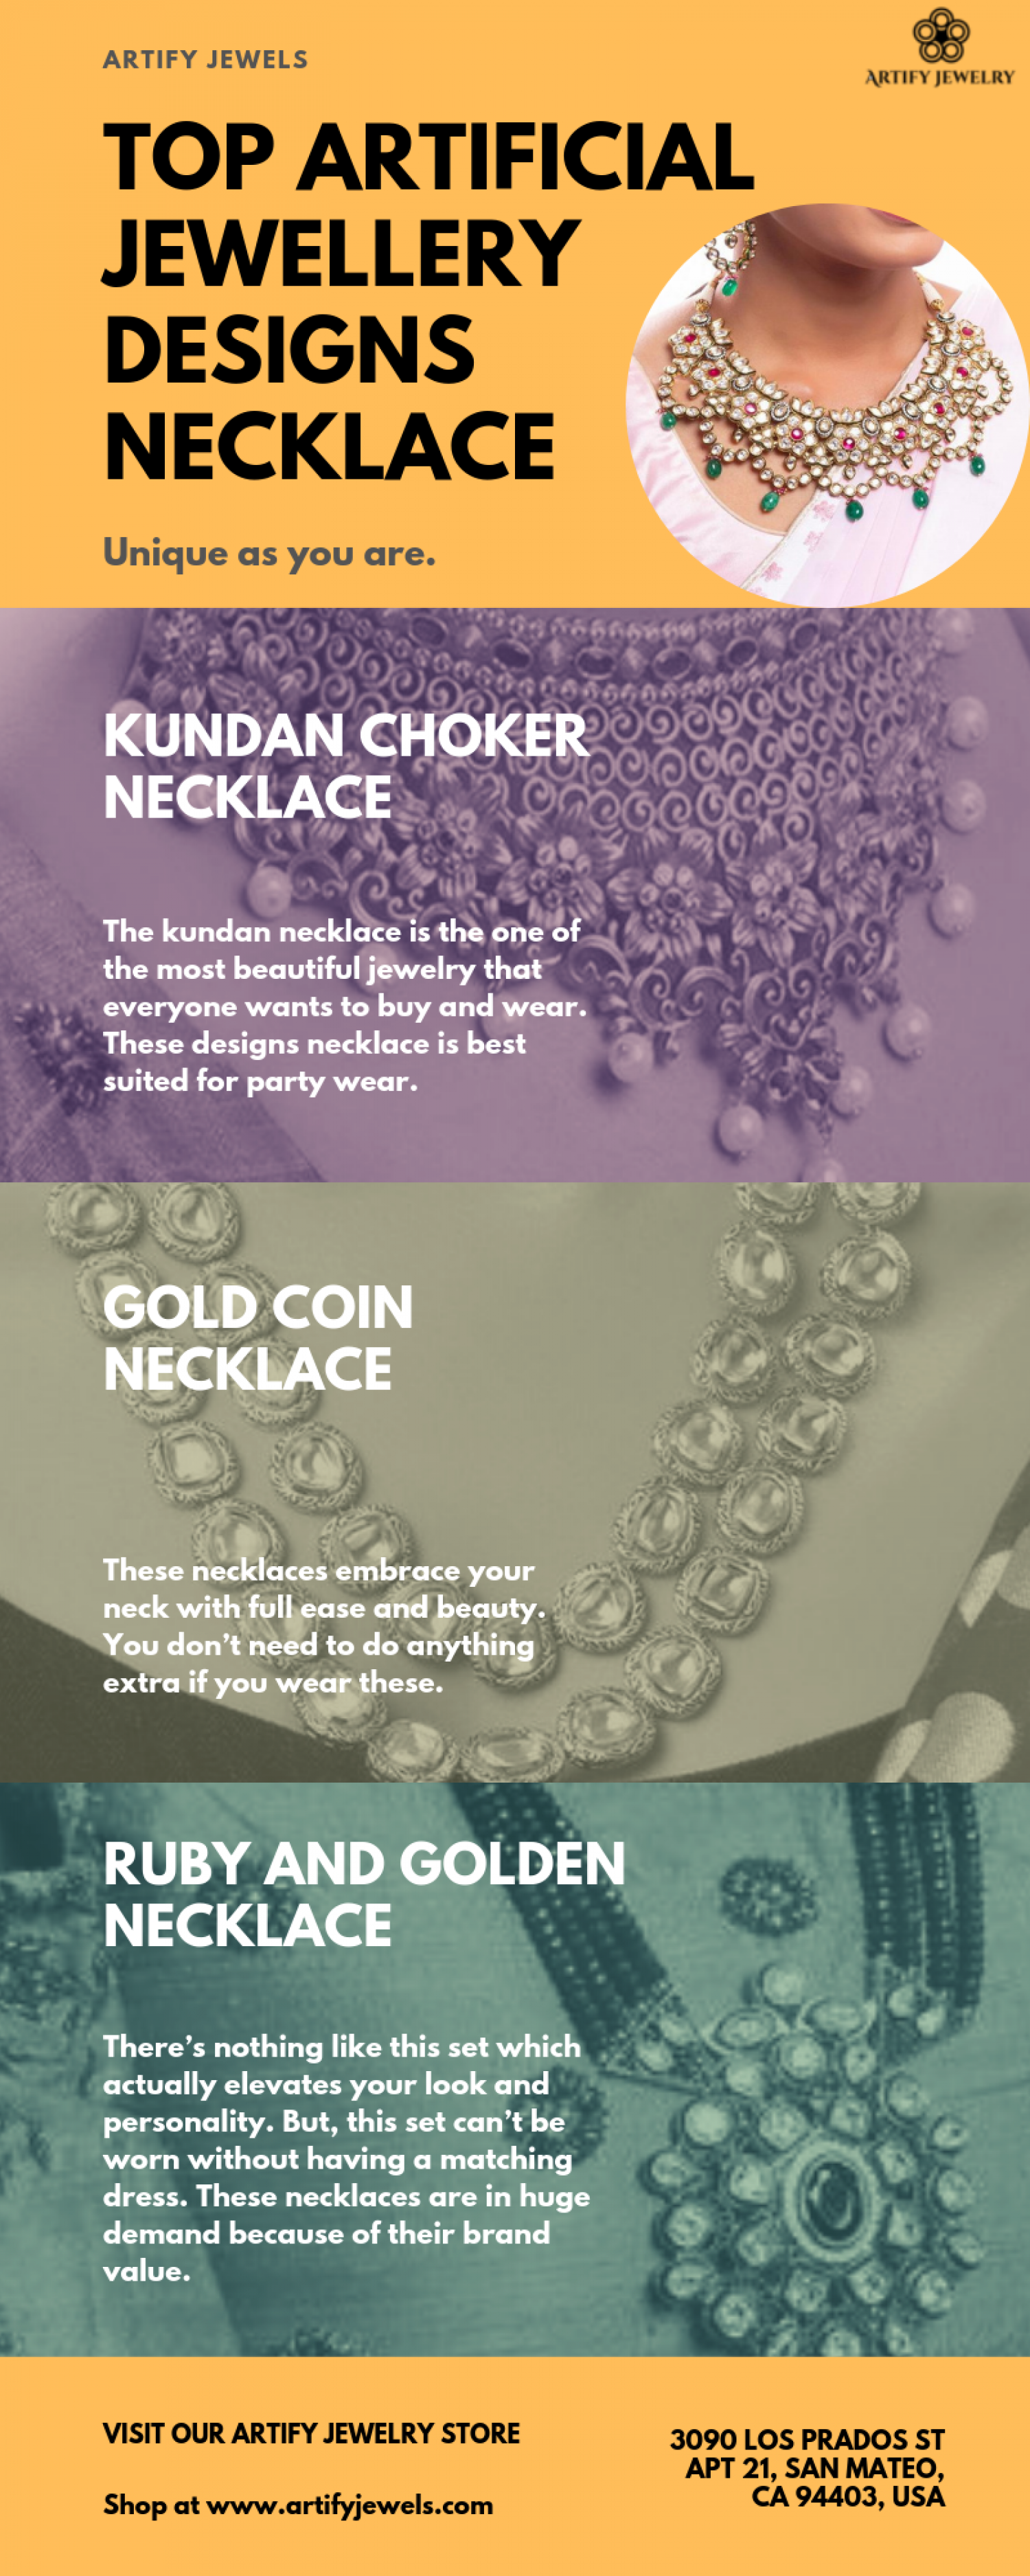 Top Artificial Jewellery Designs Necklace at Artify Jewels Infographic